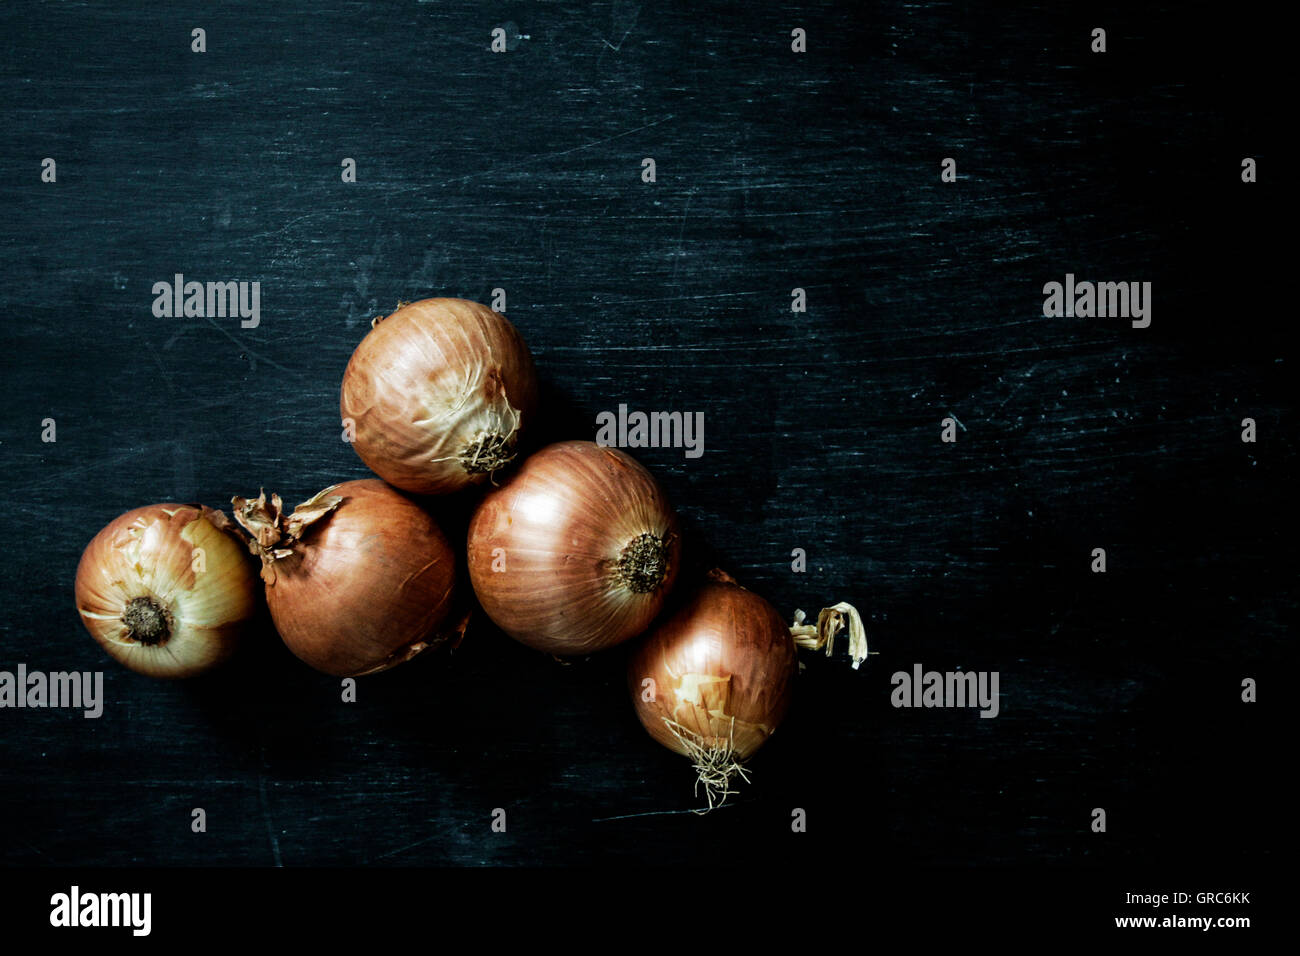 Onion Vegetable Food Harvest Seed Crop Amount Diet Taste - Stock Image